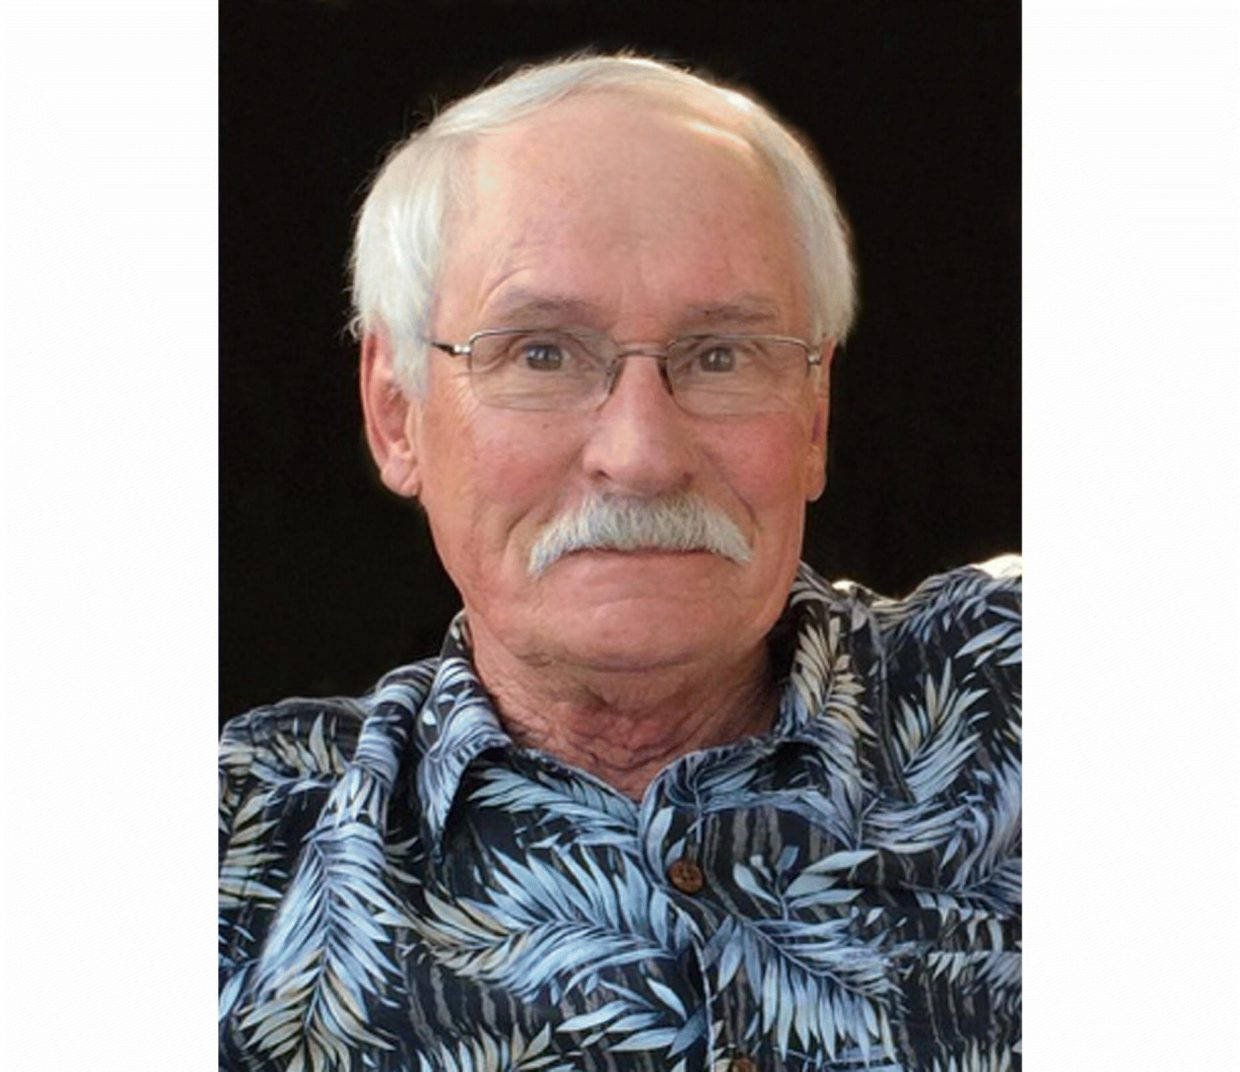 Obituary: Douglas Wayne Cook | SteamboatToday com